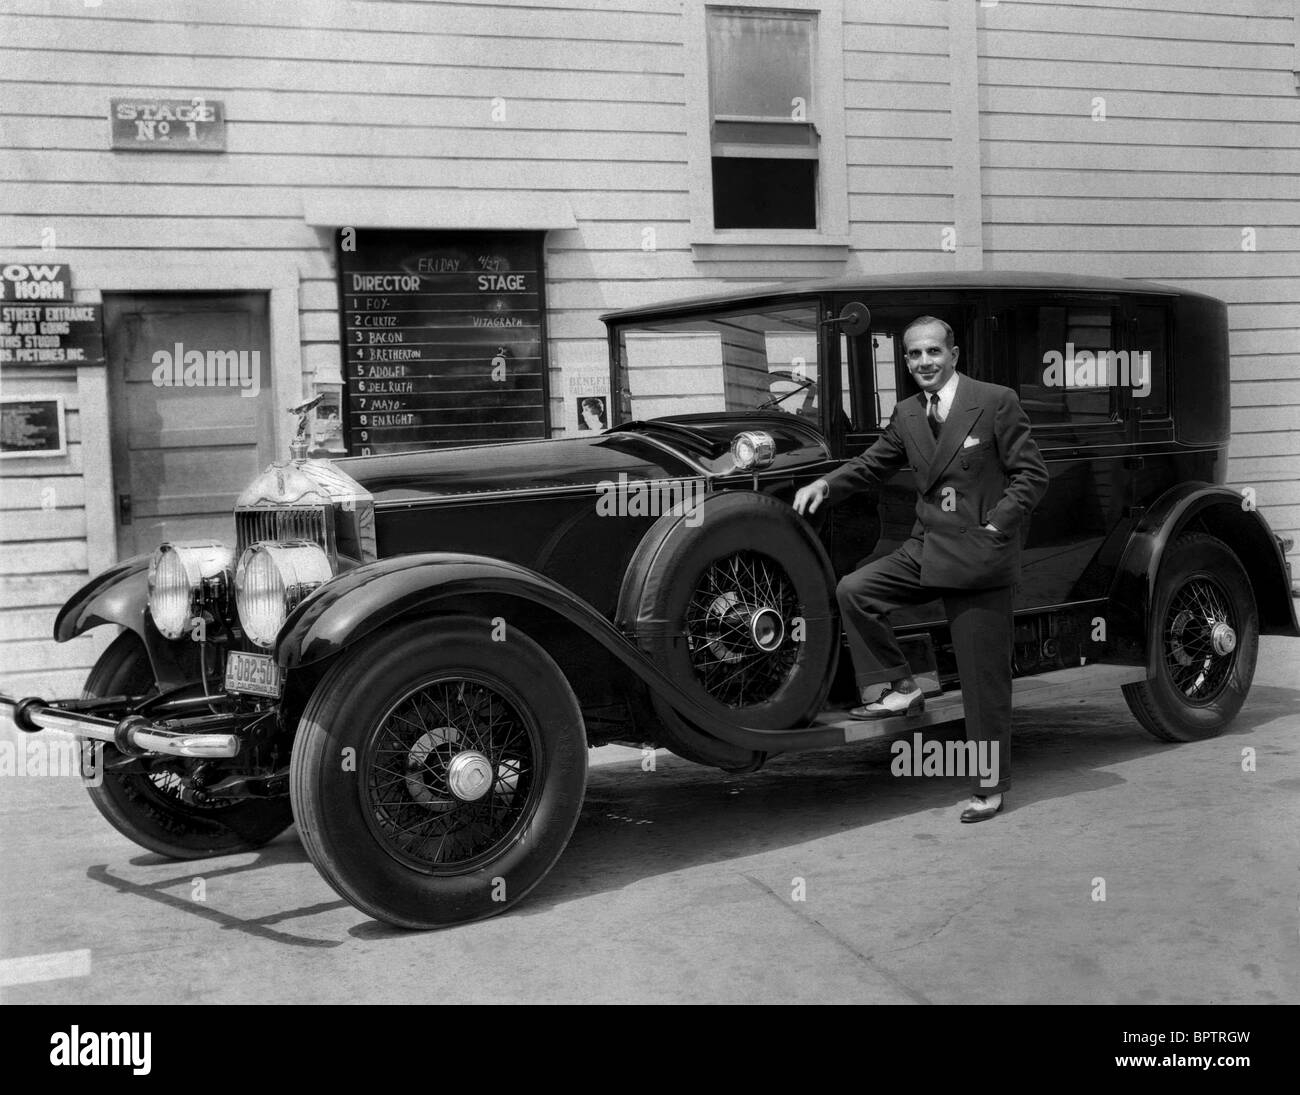 Royce Black and White Stock Photos & Images - Alamy